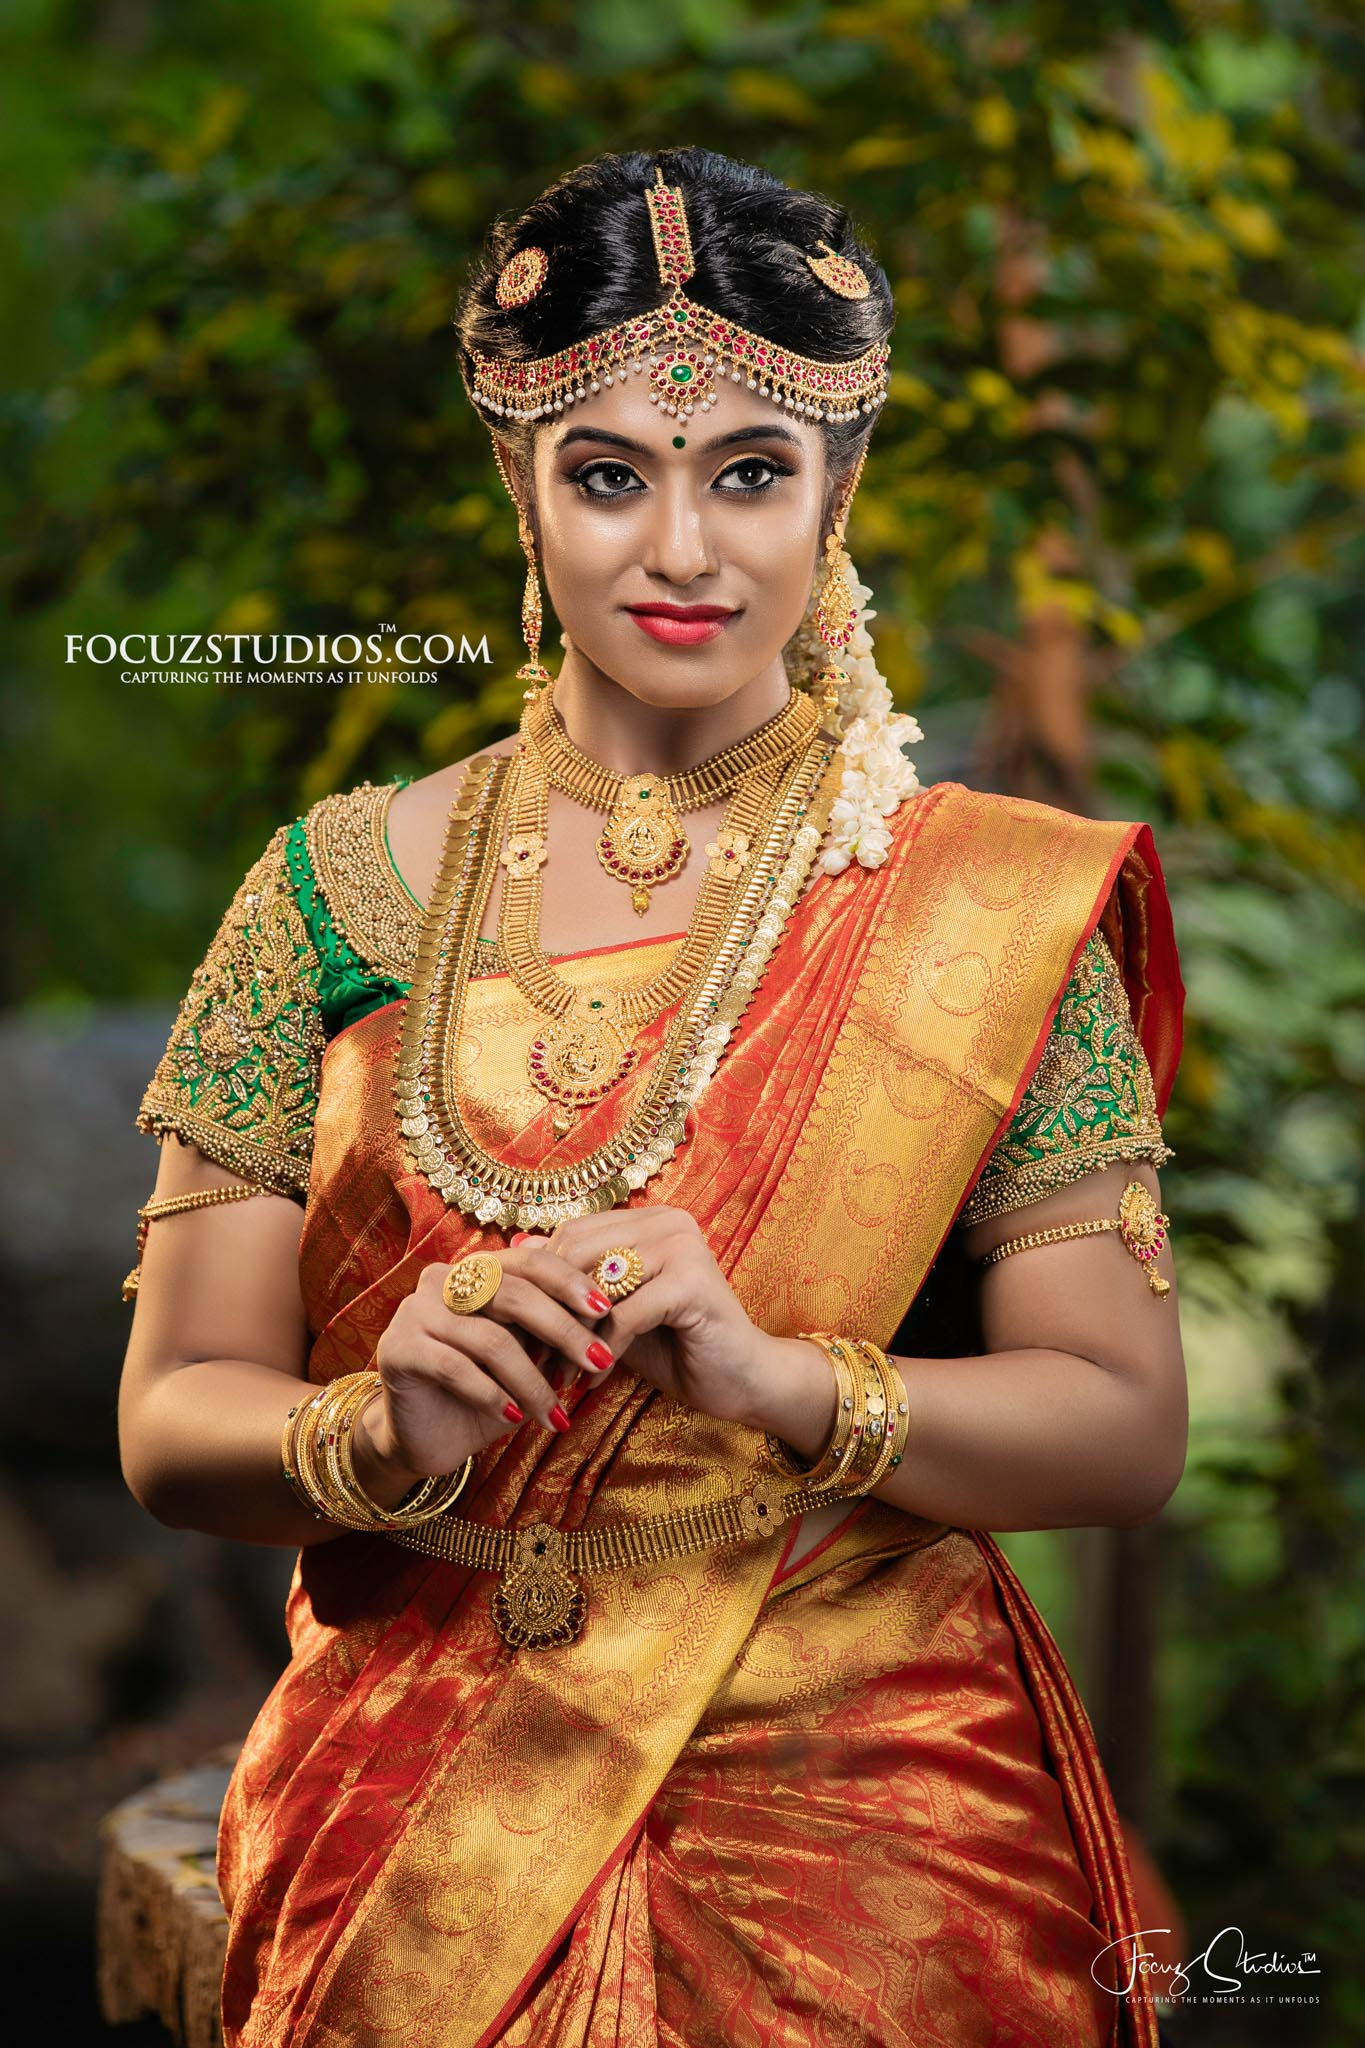 best-south-indian-bridal-portrait-poses-focuz-studios-4